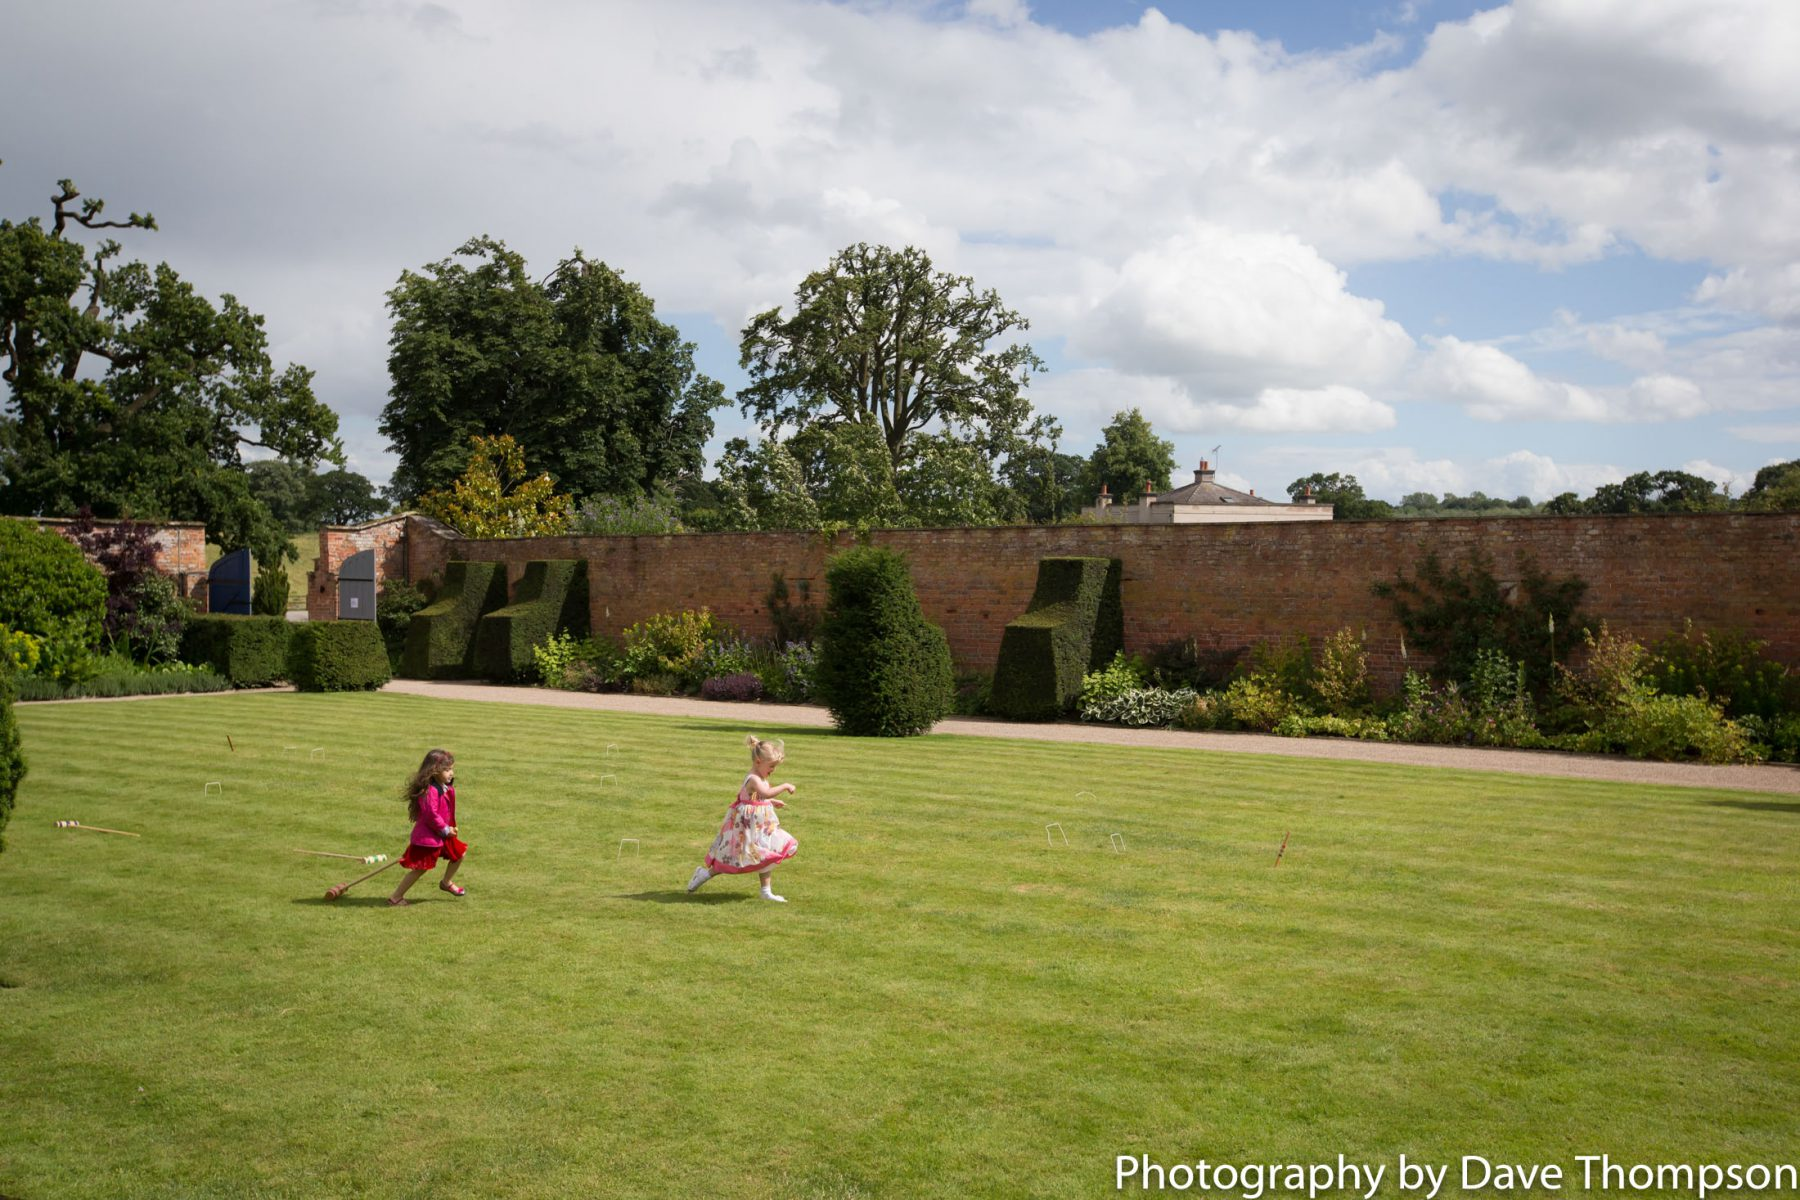 Children play in the grounds